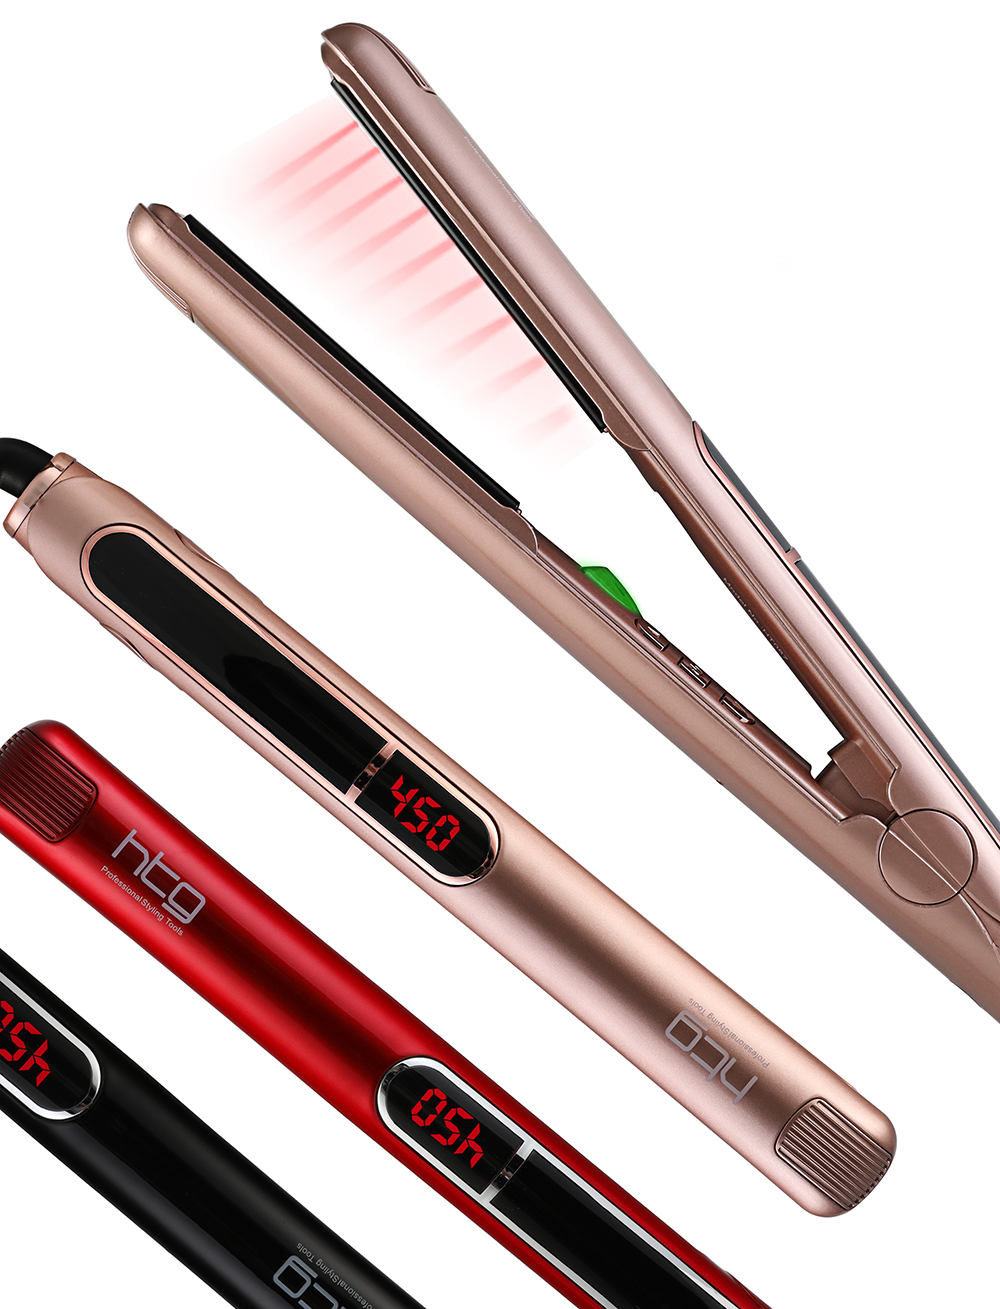 HTG Professional Hair Straightener Hair Flat Iron Negative ION Infrared Hair Straightener Hair straighting Iron LCD Display infrared flat iron hair straightener mch fast heating dual voltage ceramic plates lcd display flat hair straightener irons